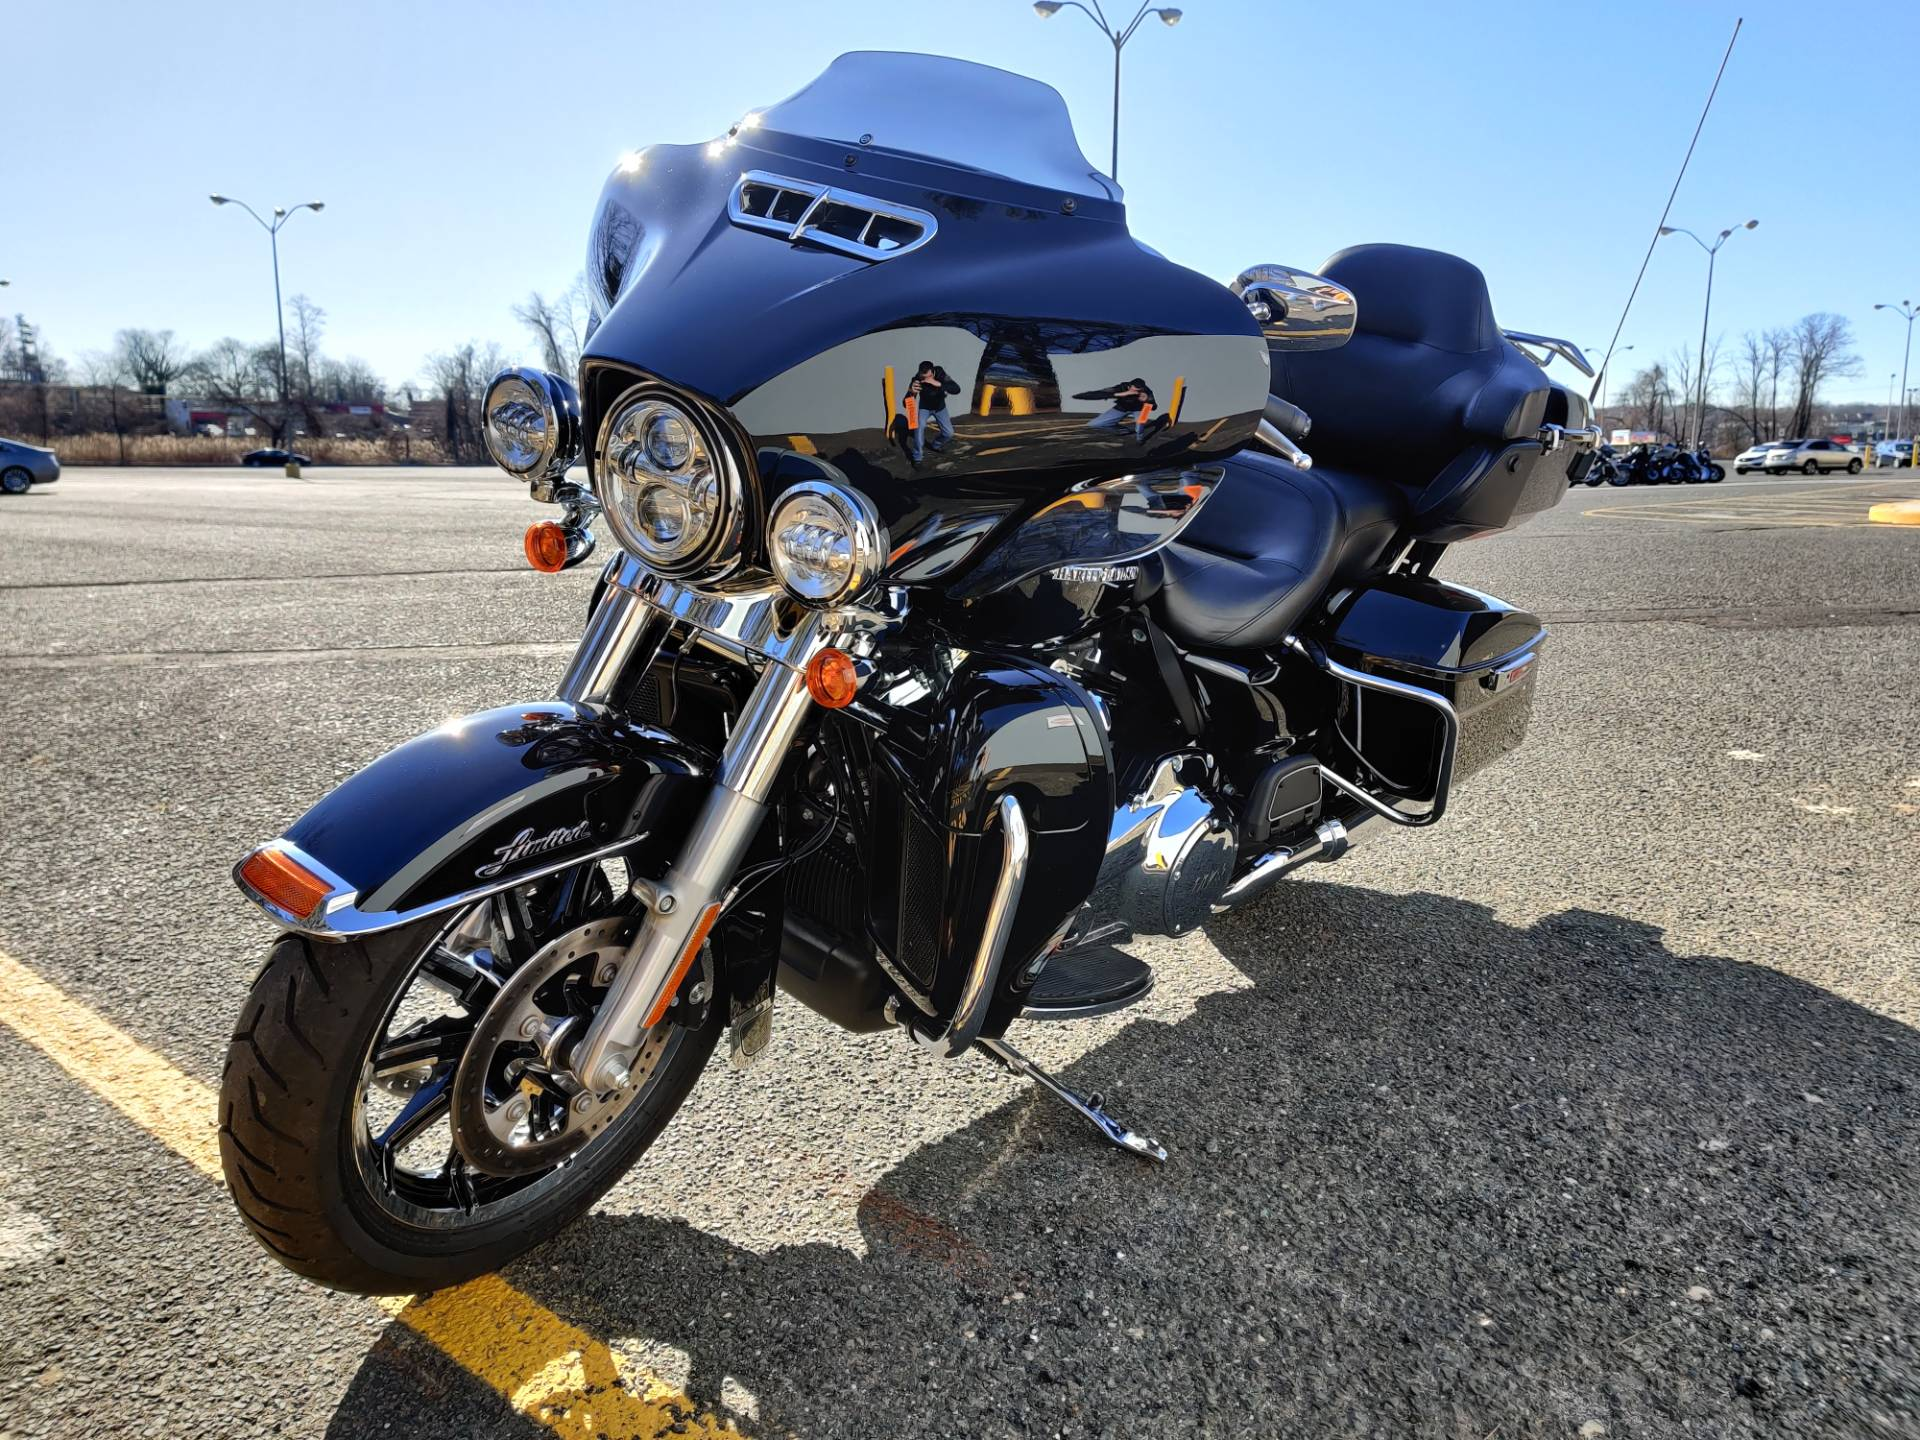 2019 Harley-Davidson Ultra Limited in West Long Branch, New Jersey - Photo 5